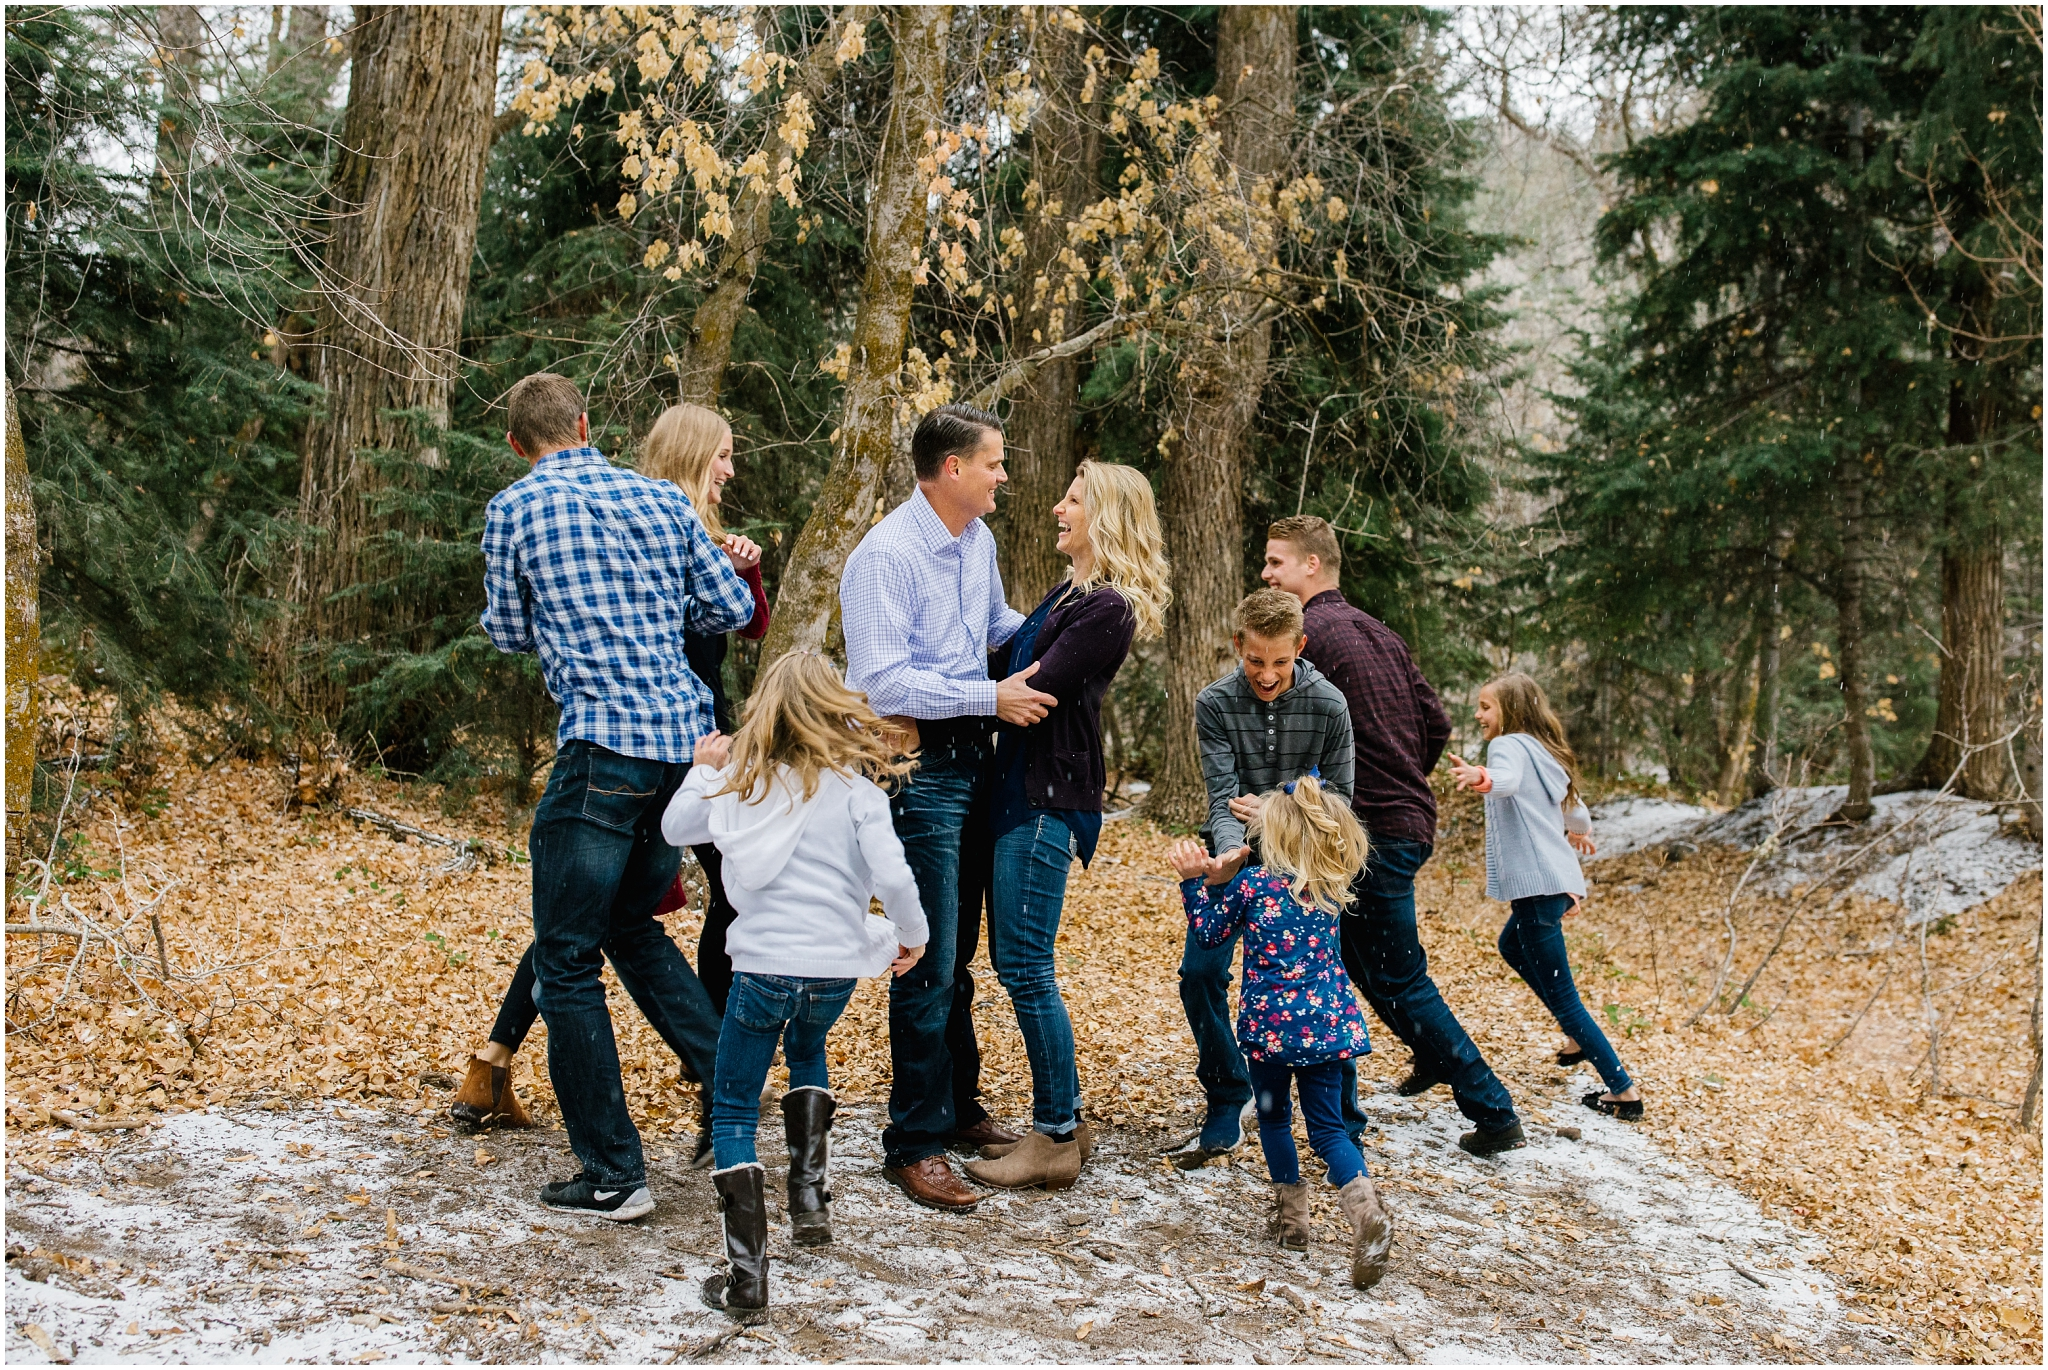 Vance-15_Lizzie-B-Imagery-Utah-Family-Photographer-Salt-Lake-City-Park-City-Utah-County-Payson-Canyon.jpg